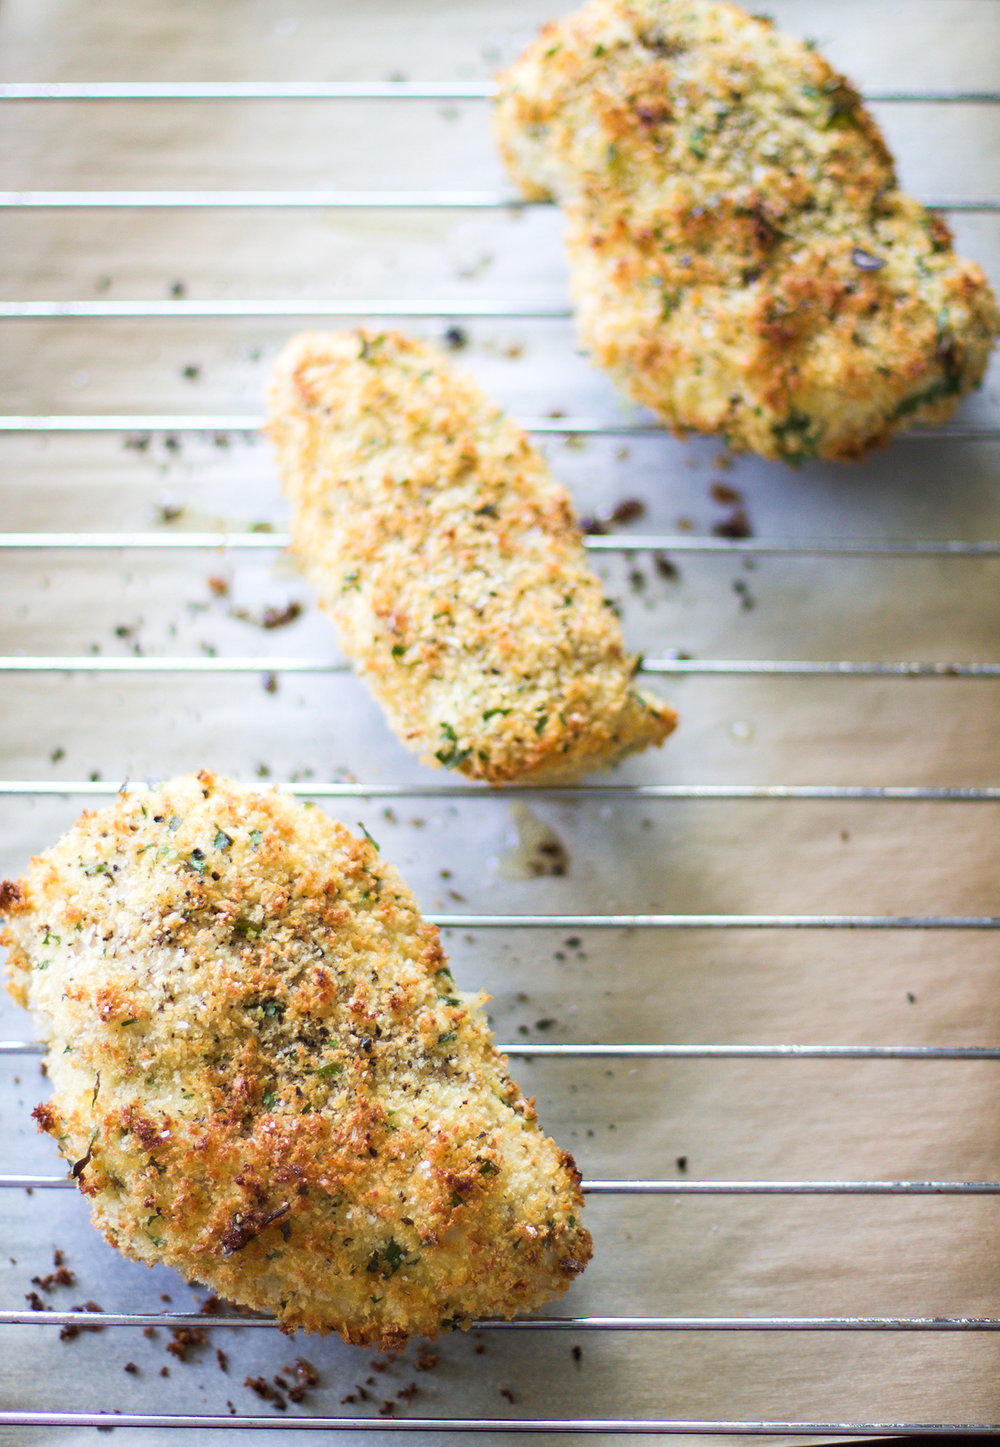 Easy and Healthy Breaded Chicken: My Diary of Us